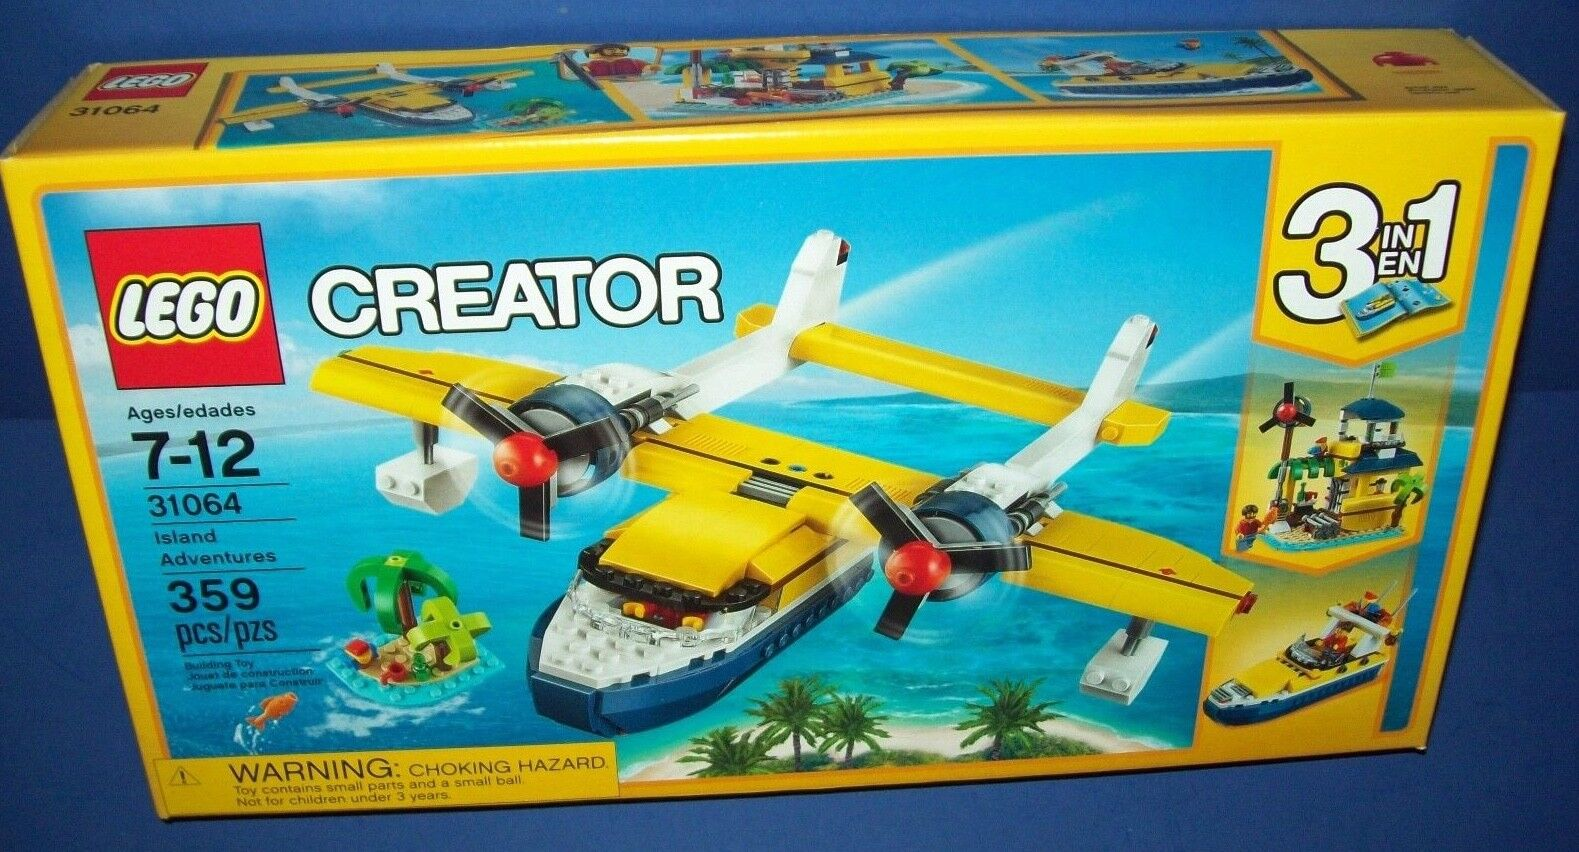 LEGO 31064 Creator ISLAND ADVENTURES 3 in 1 sea plane new in sealed box